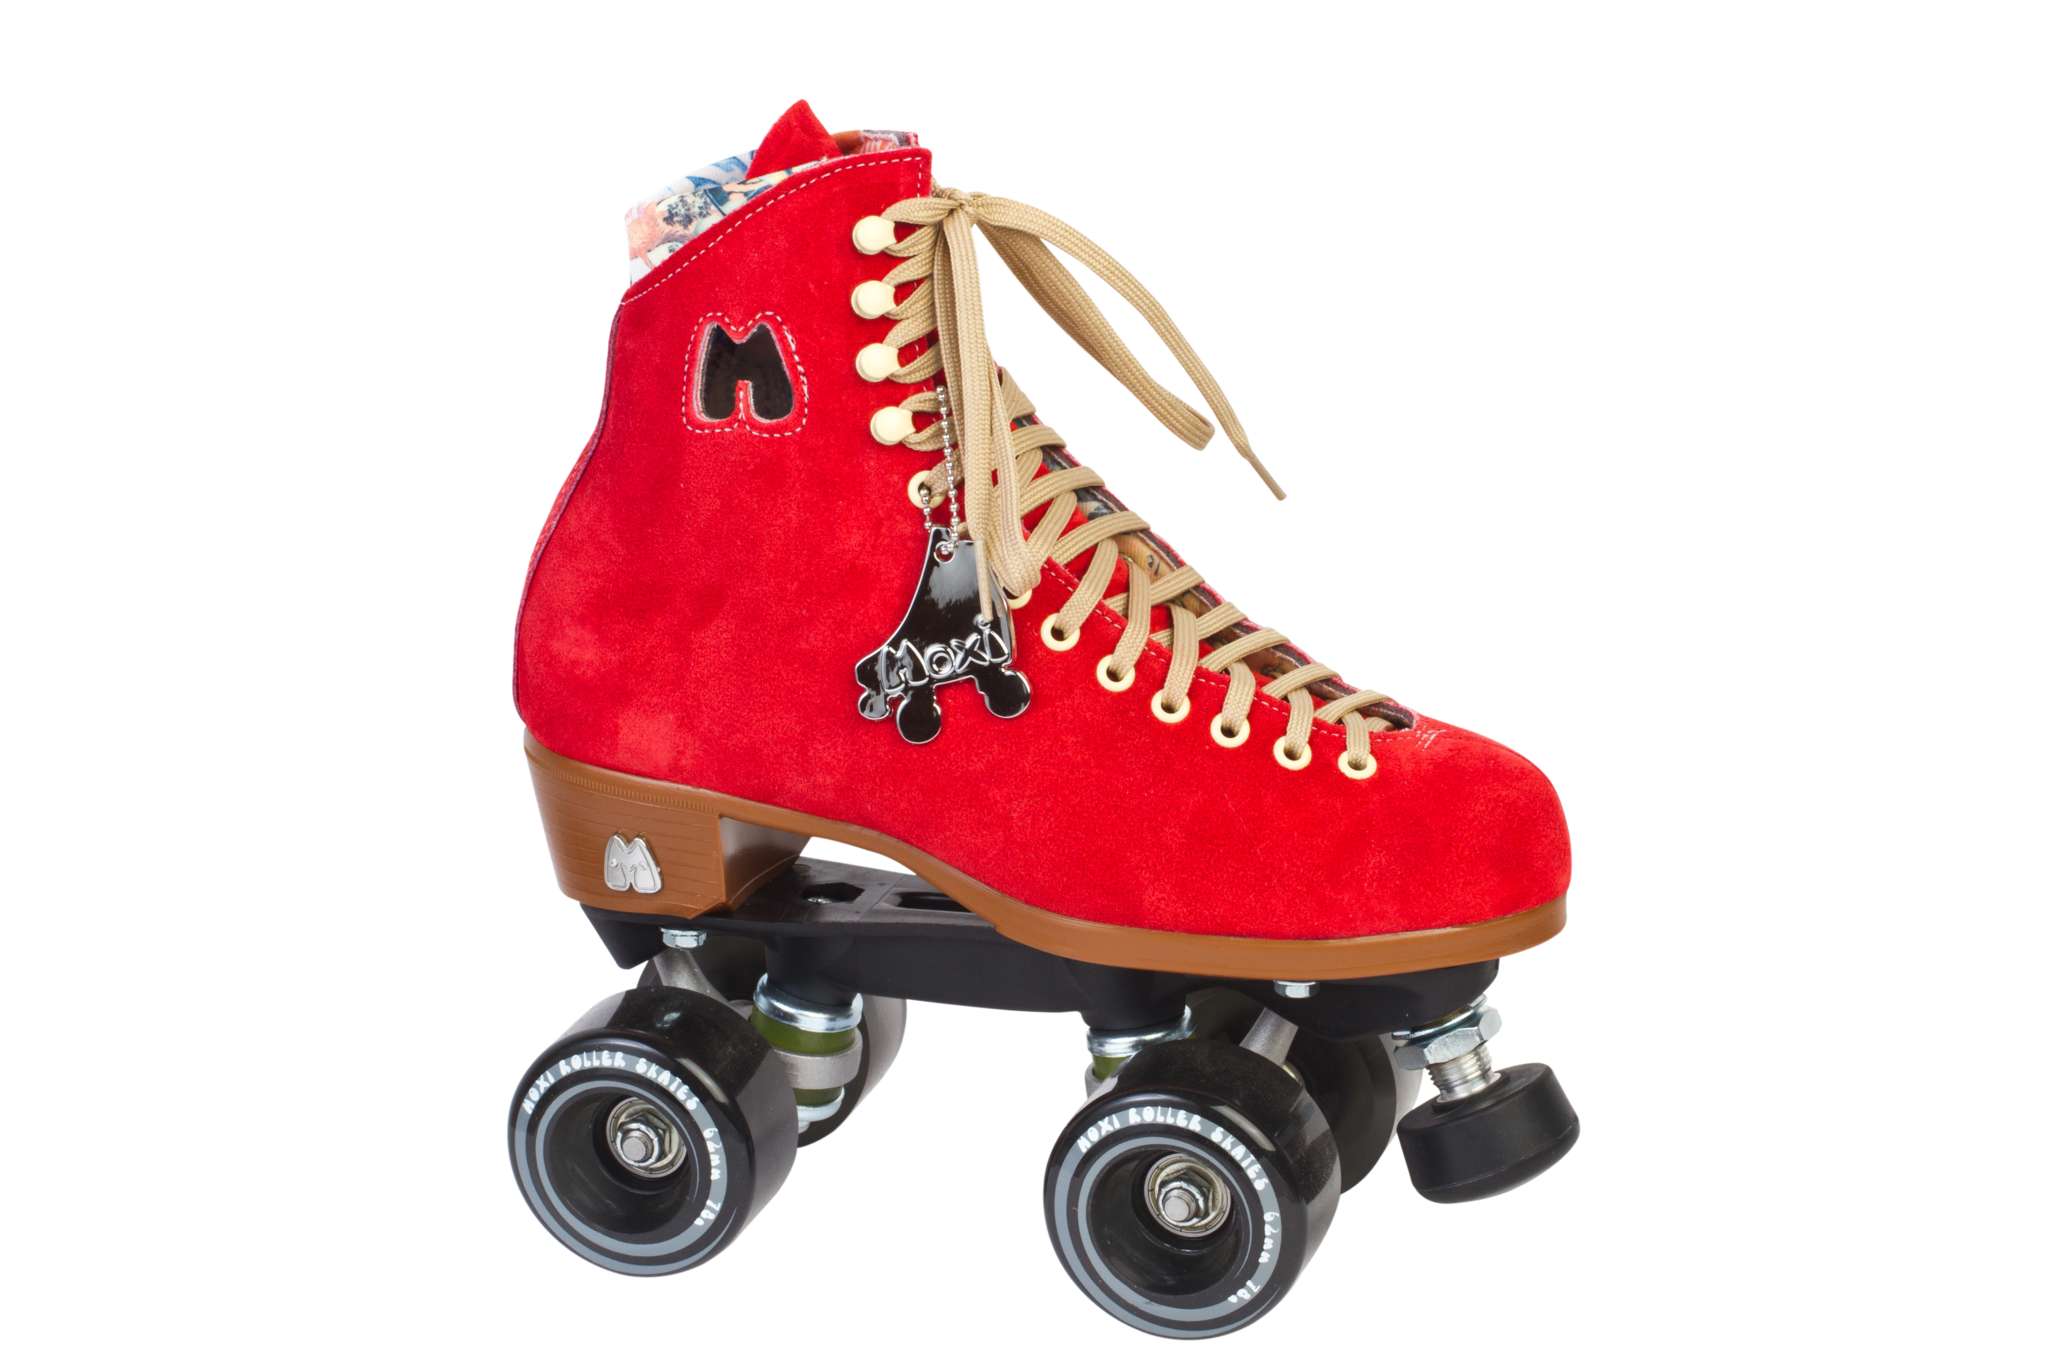 Lolly Outdoor Complete Poppy Red Roller Skates Quad Roller Skates Soft Leather Boots